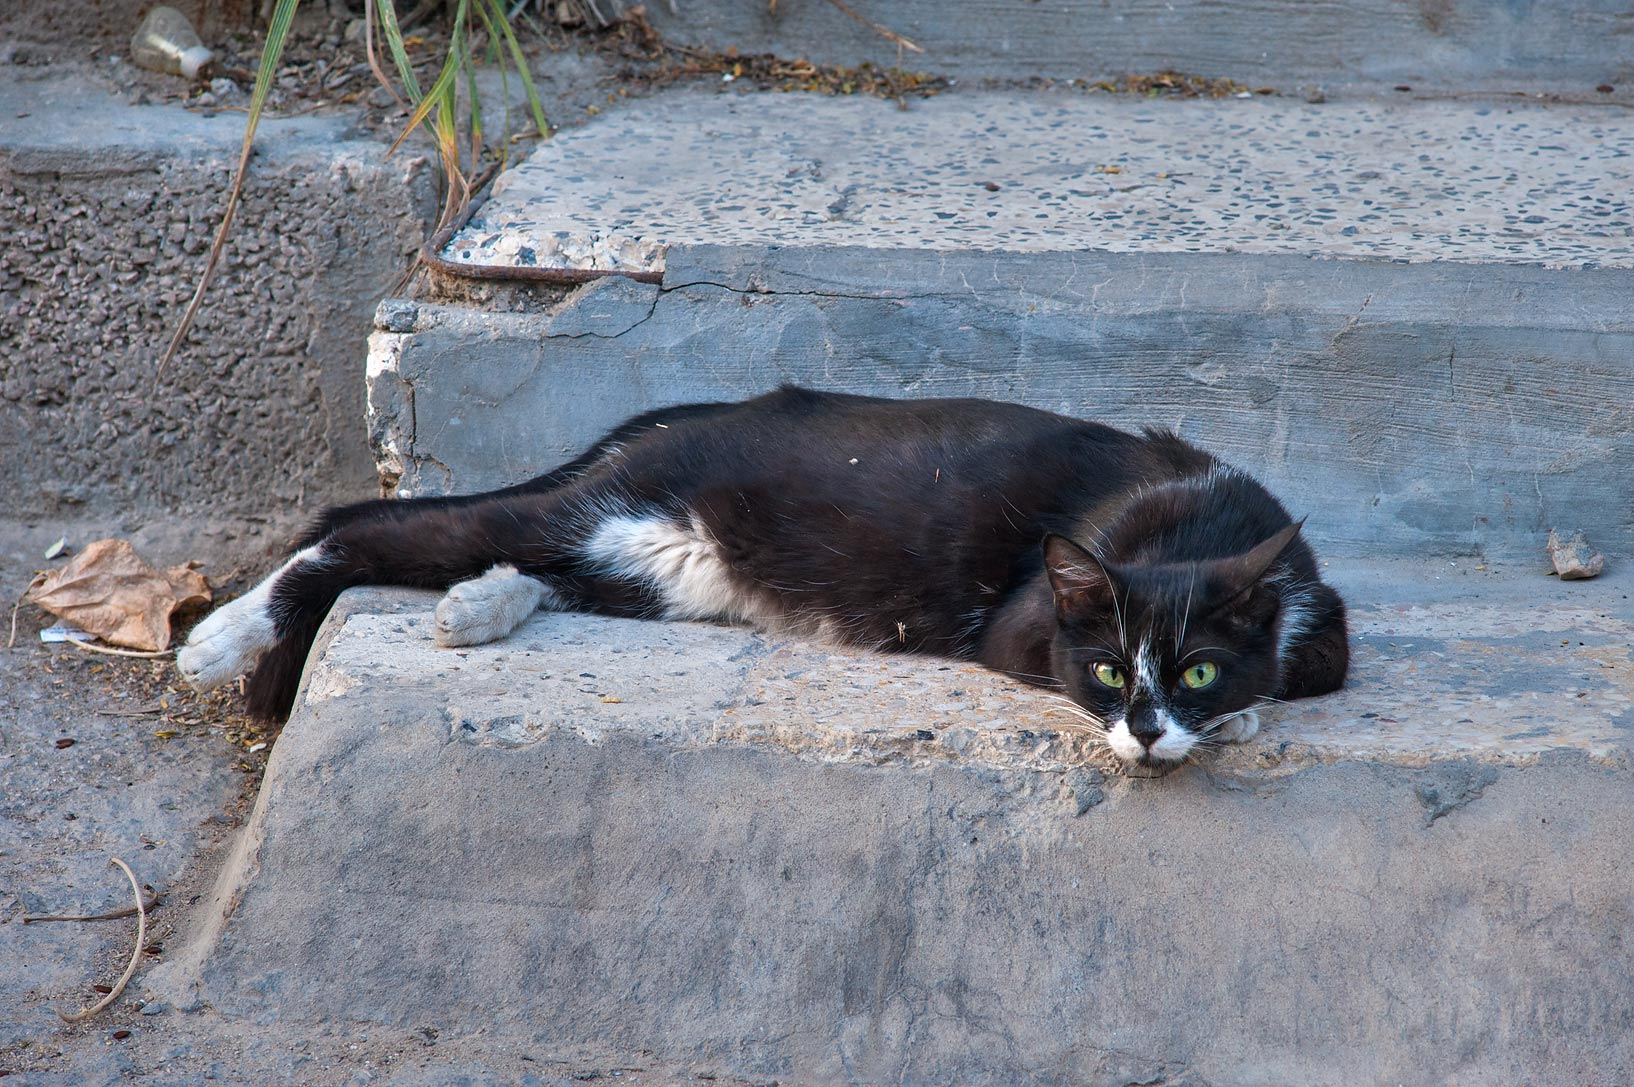 Tuxedo cat sleeping on steps near Umm Wishad St. in Musheirib area. Doha, Qatar